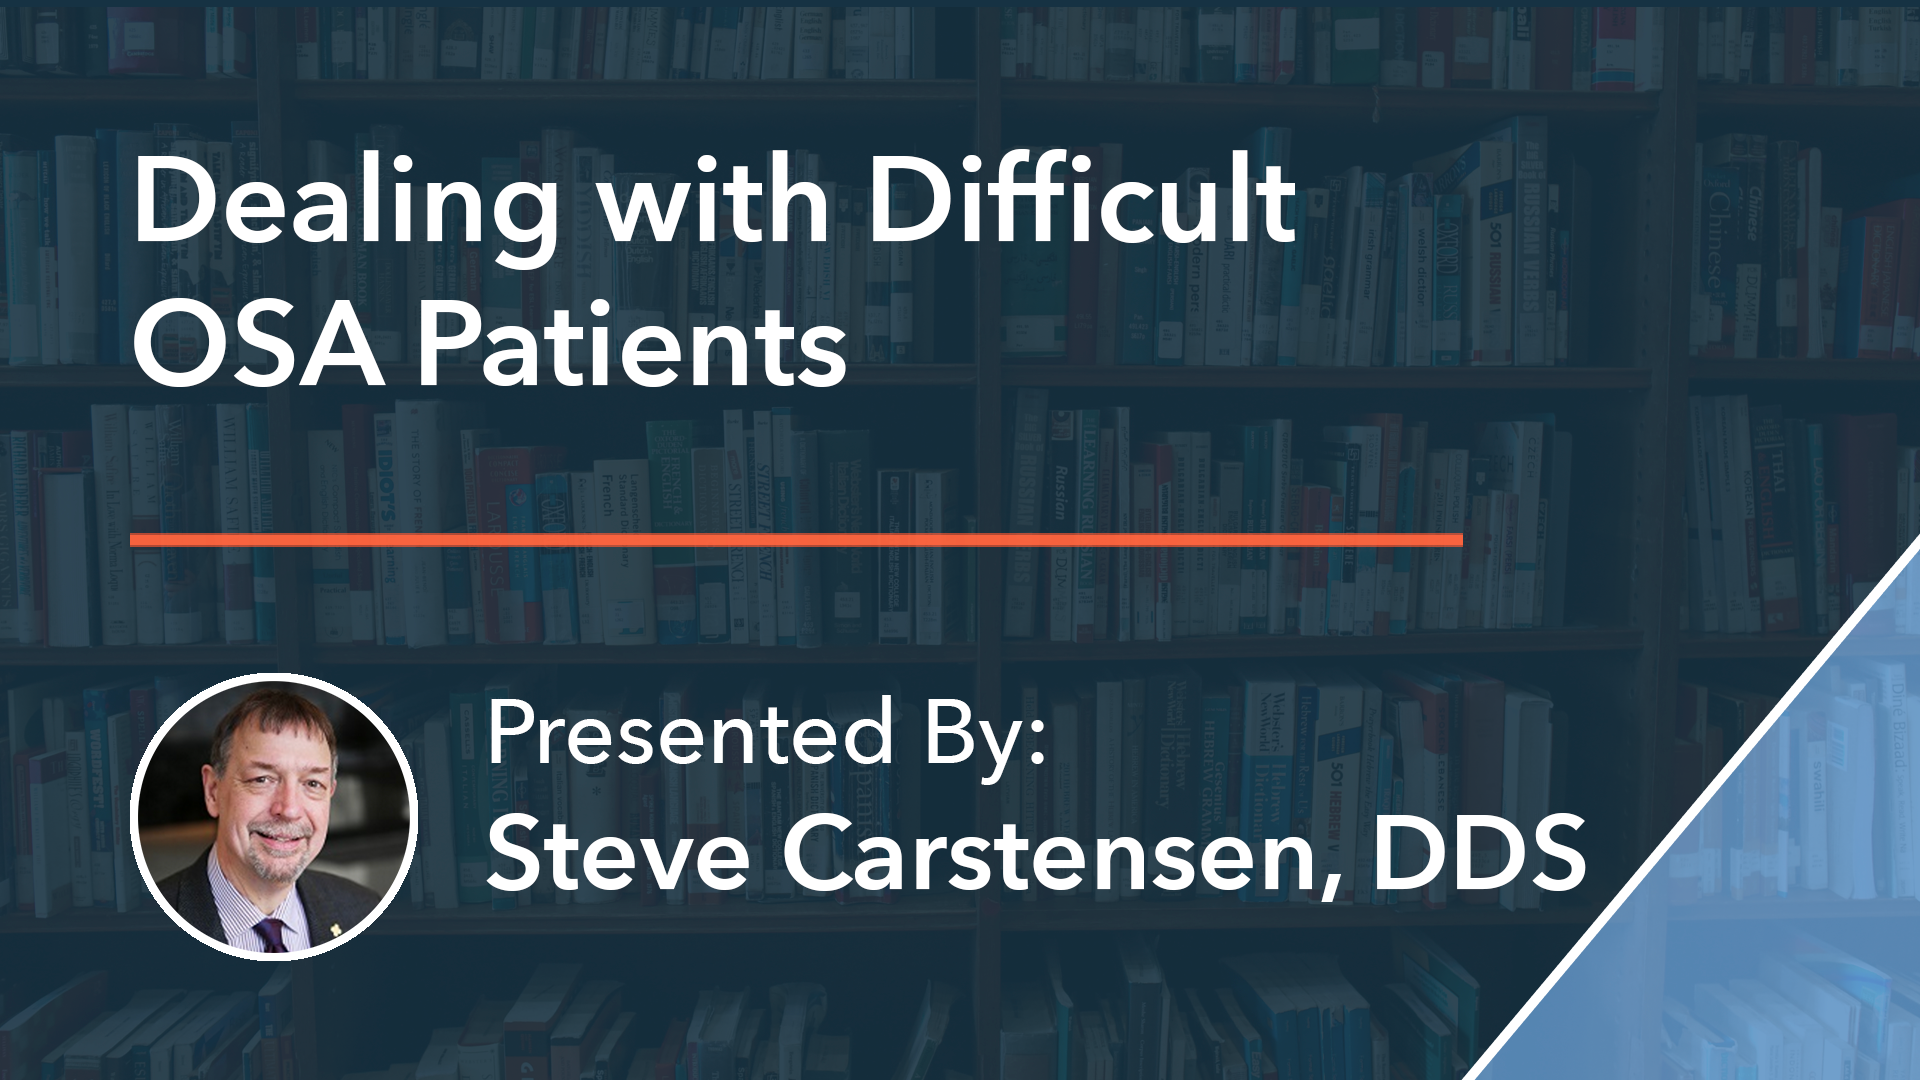 Dealing with Difficult OSA Patients Dr Steve Carstensen